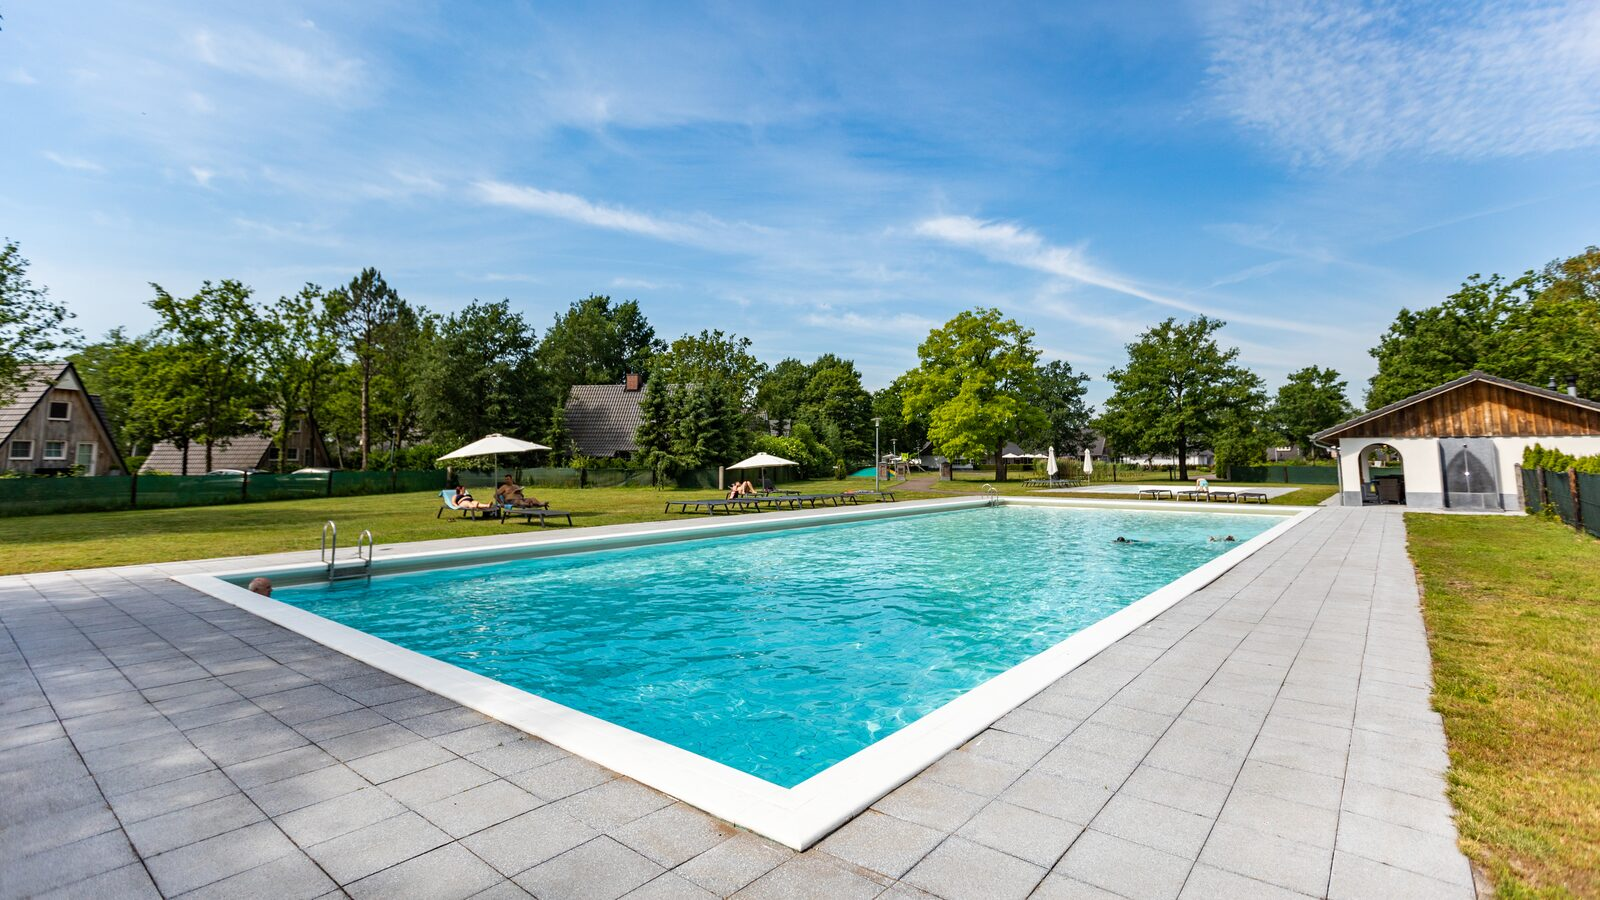 Holiday park Twente with swimming pool